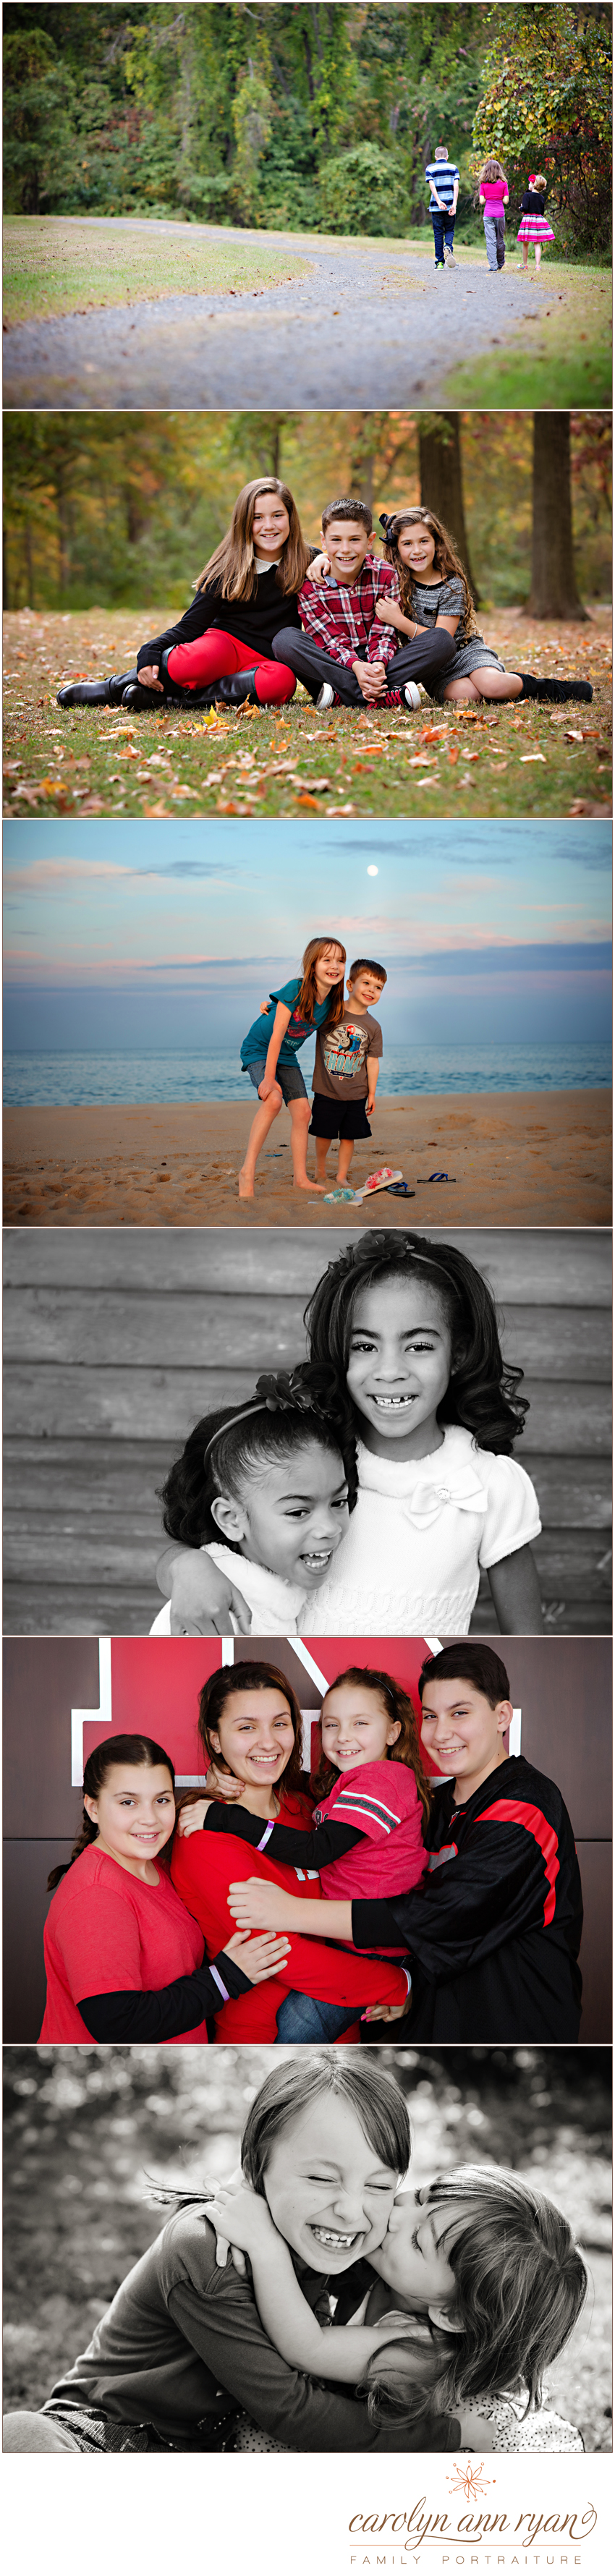 National Sibling Day Portraits shared by Charlotte Family Photographer Carolyn Ann Ryan